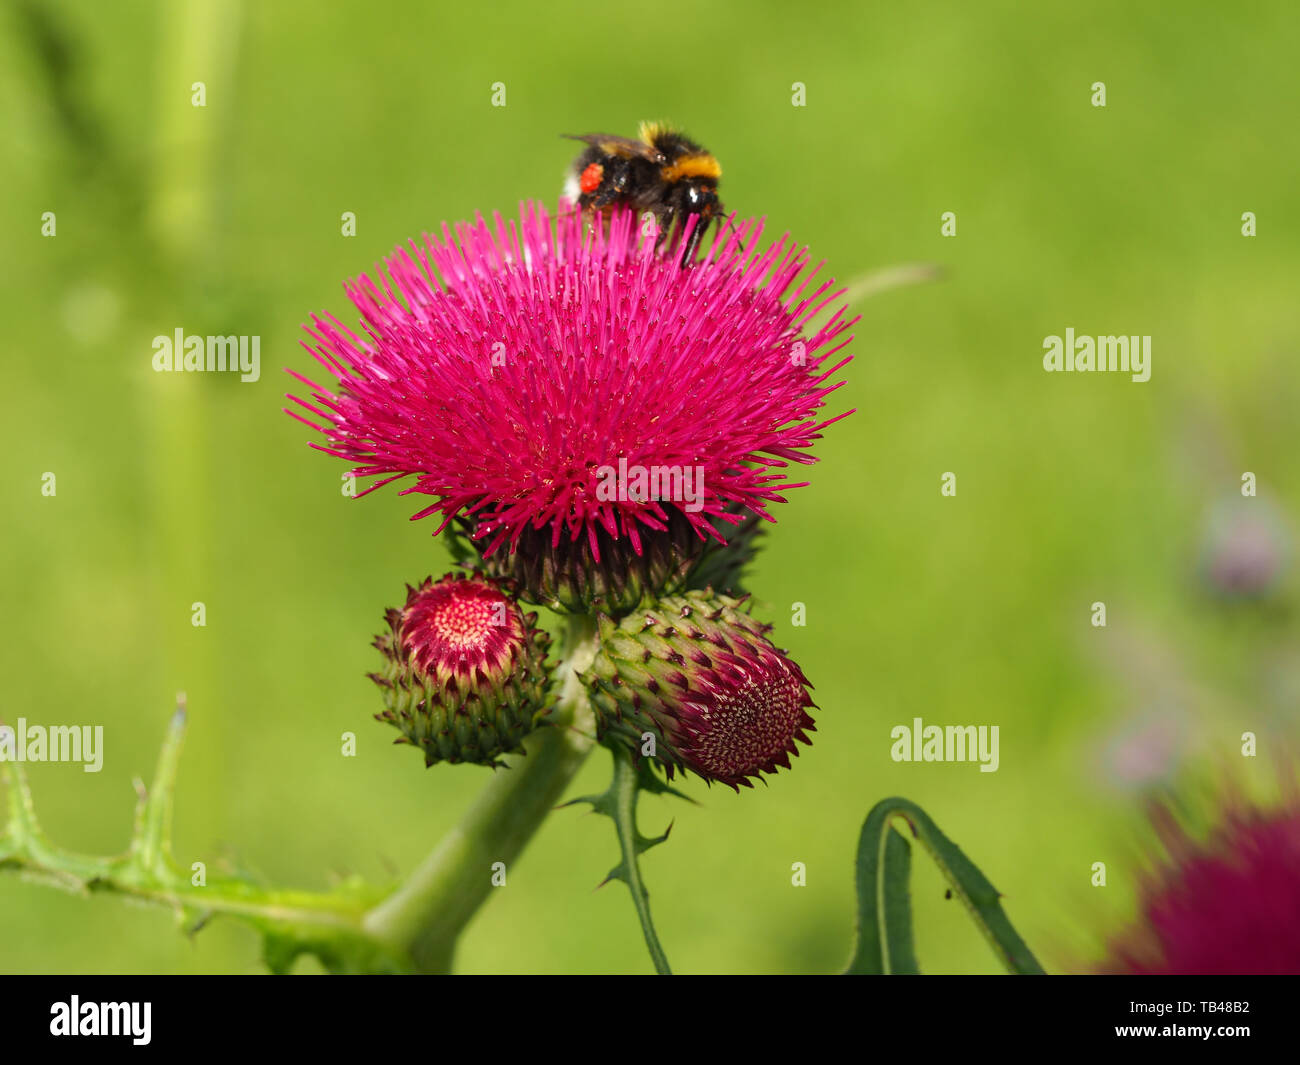 Closeup of a bright pink brook thistle flower (Cirsium rivulare Atropurpureum) with buds and a bee in a summer garden - Stock Image